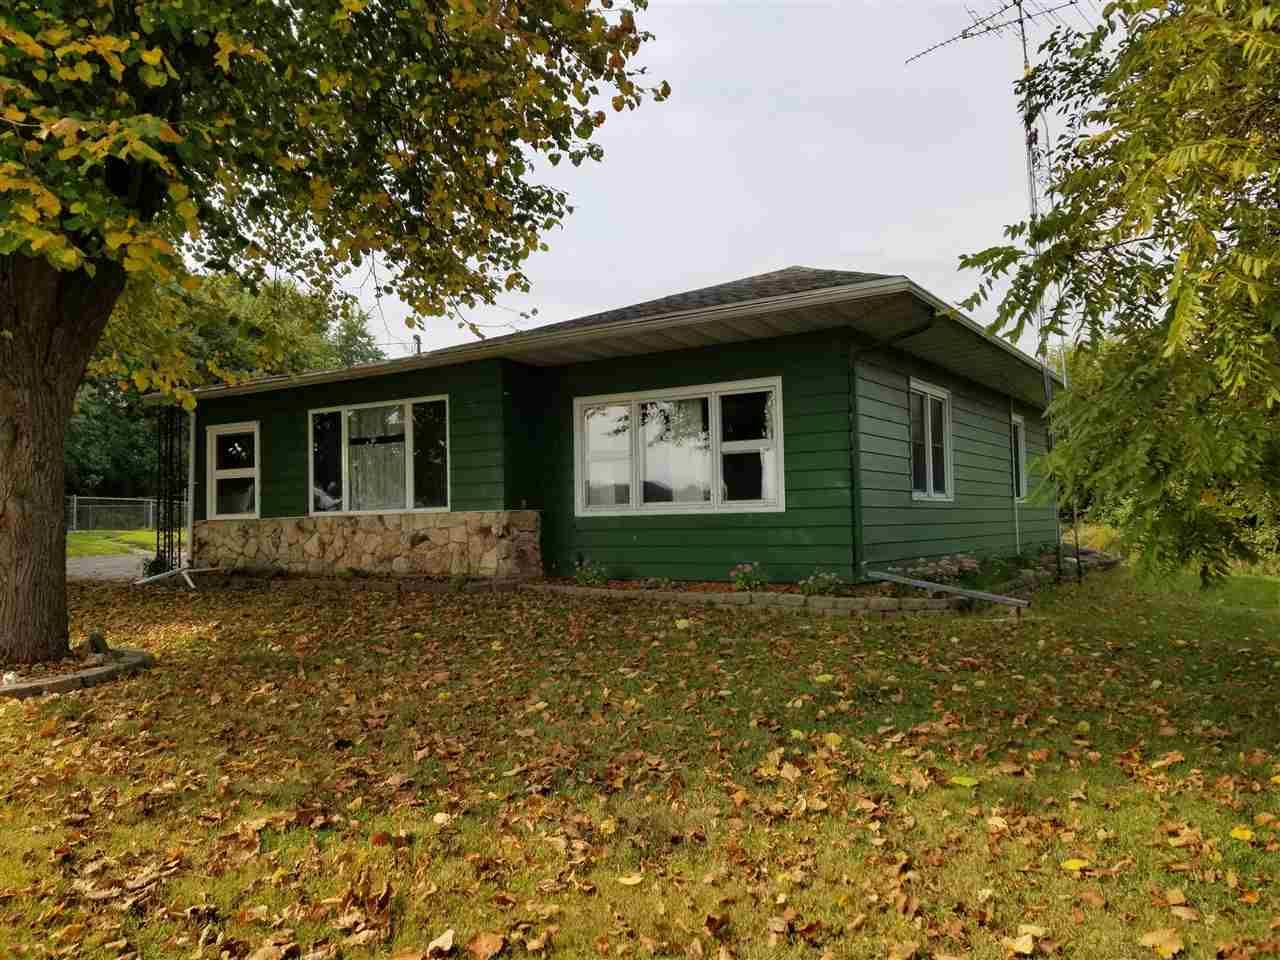 f_1894379_01 Our Listings at Best Realty of Edgerton